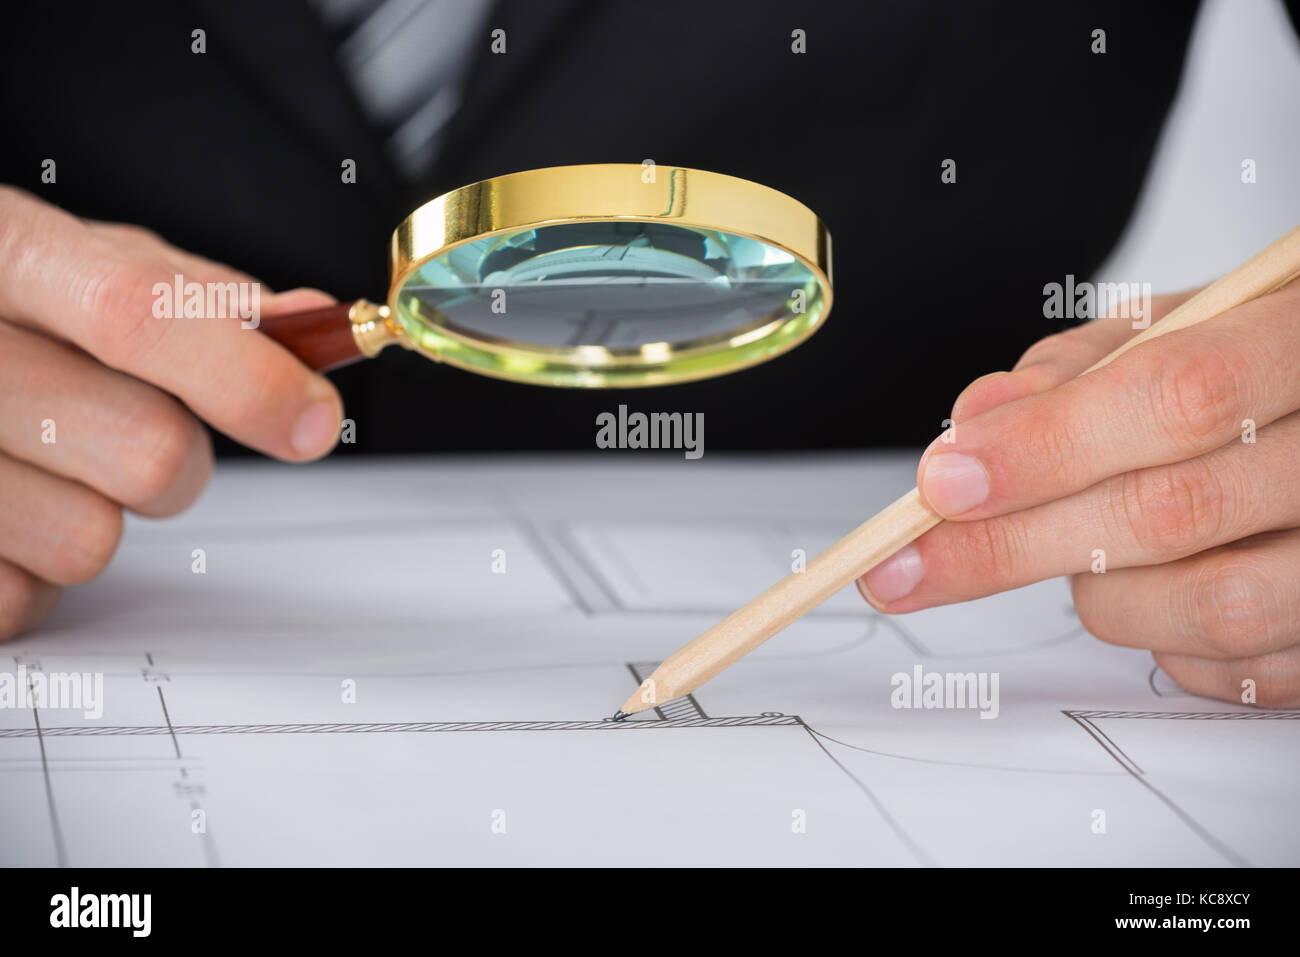 Close-up Of Male Architect Hand Using Magnifying Glass While Working On Blueprint In Office - Stock Image